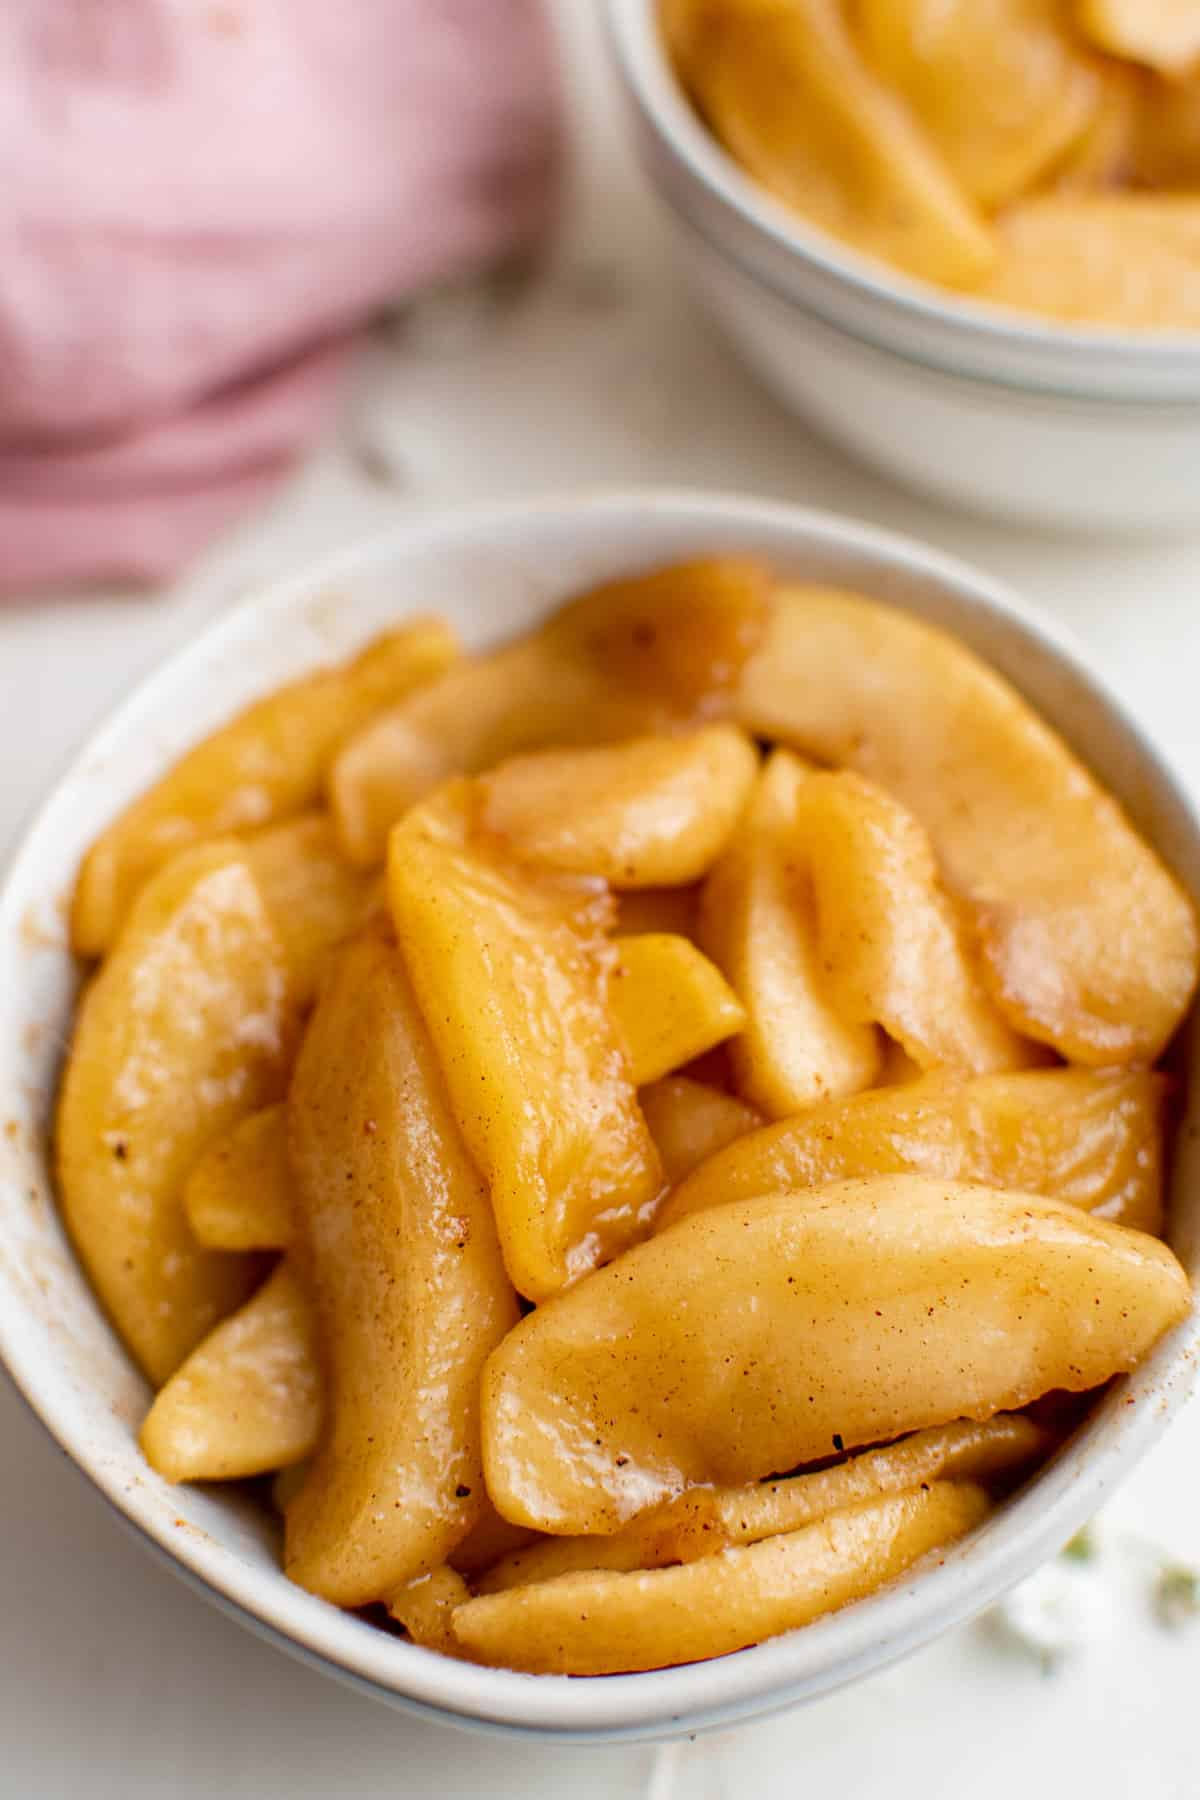 Fried apples in a small white bowl.